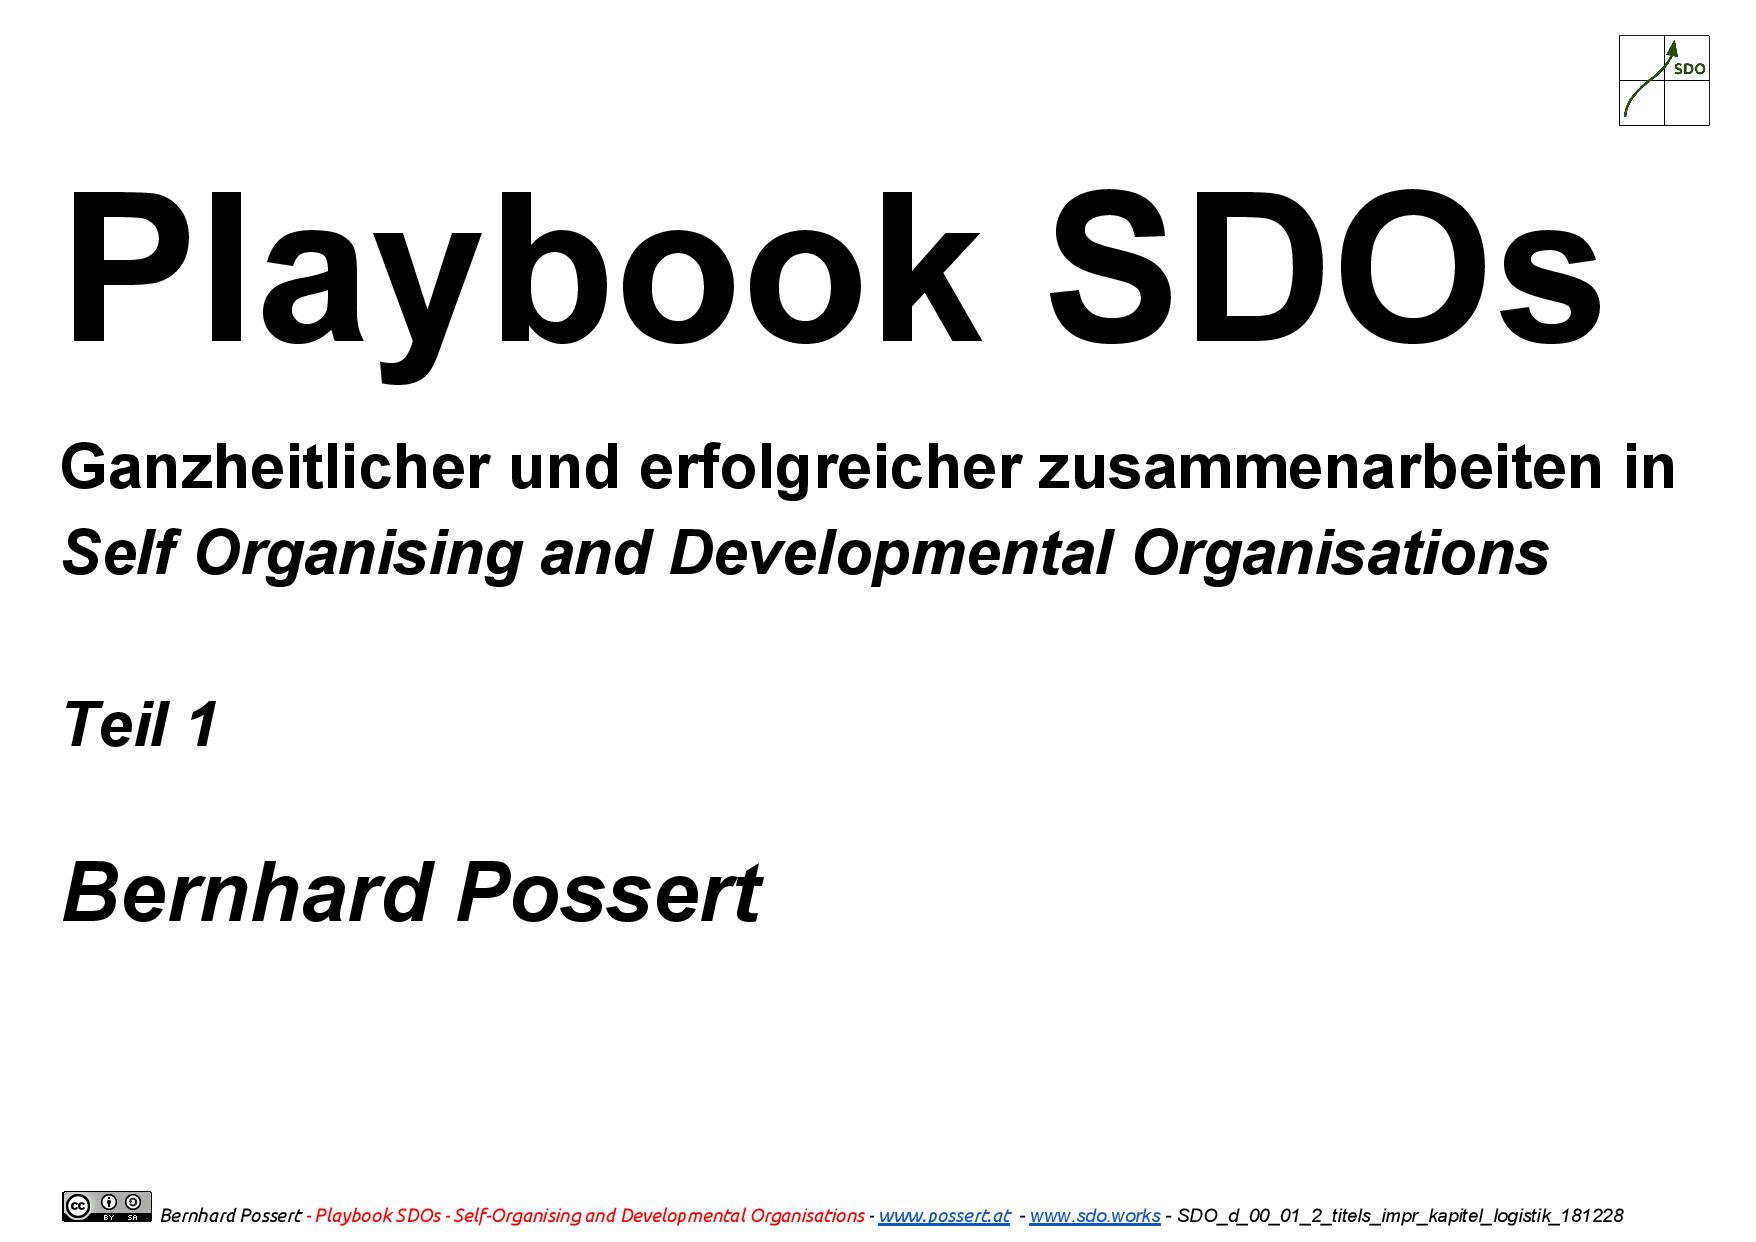 playbook sdo d 181229 cover